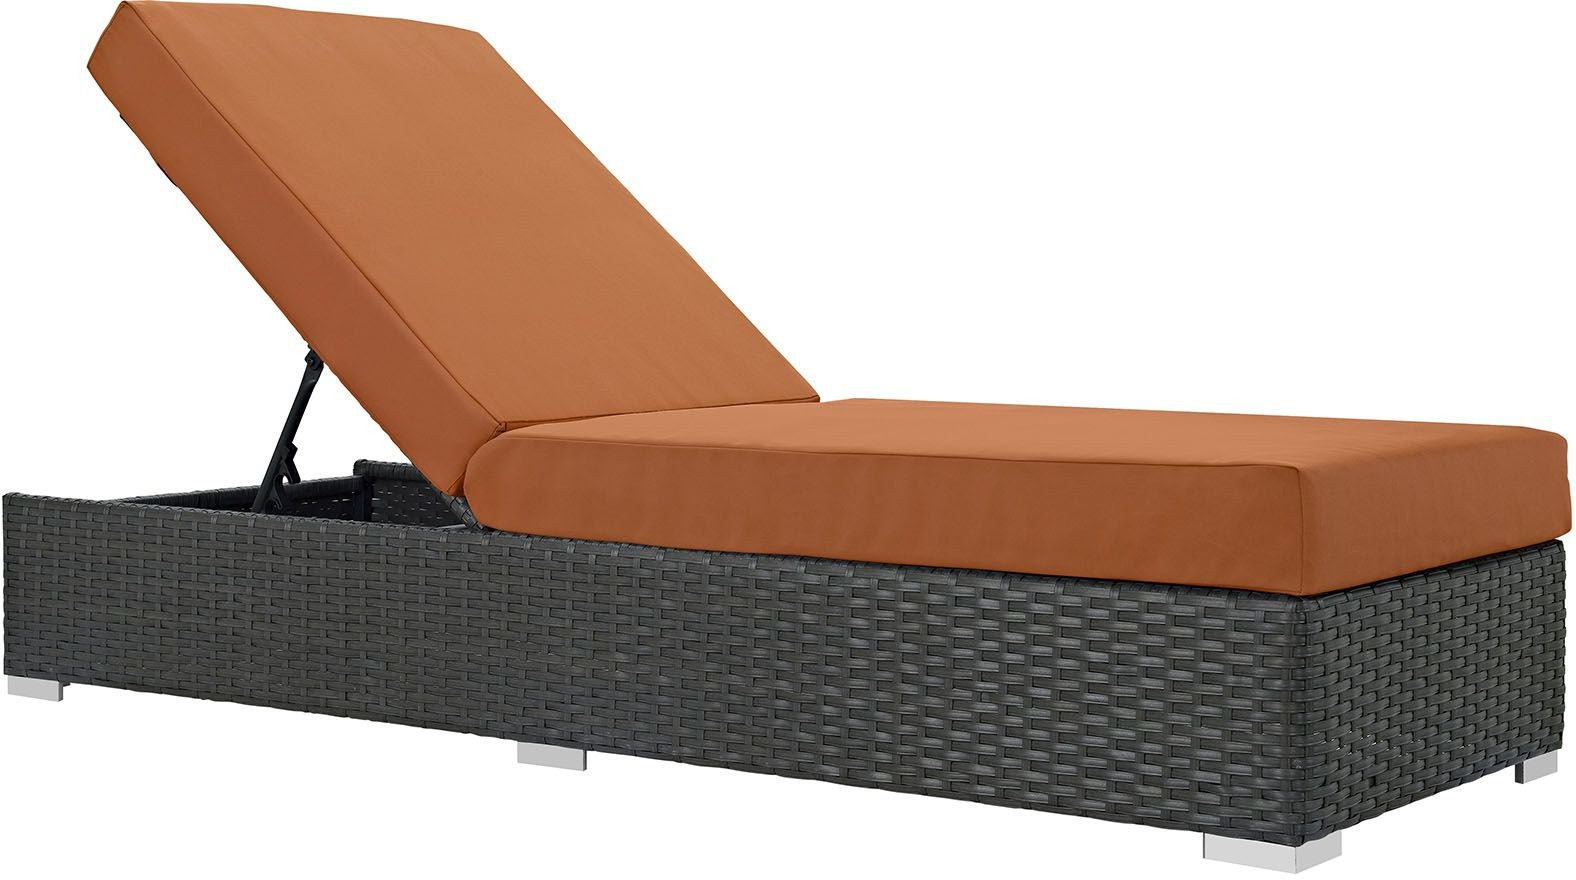 Sojourn Canvas Tuscan Outdoor Patio Sunbrella Chaise